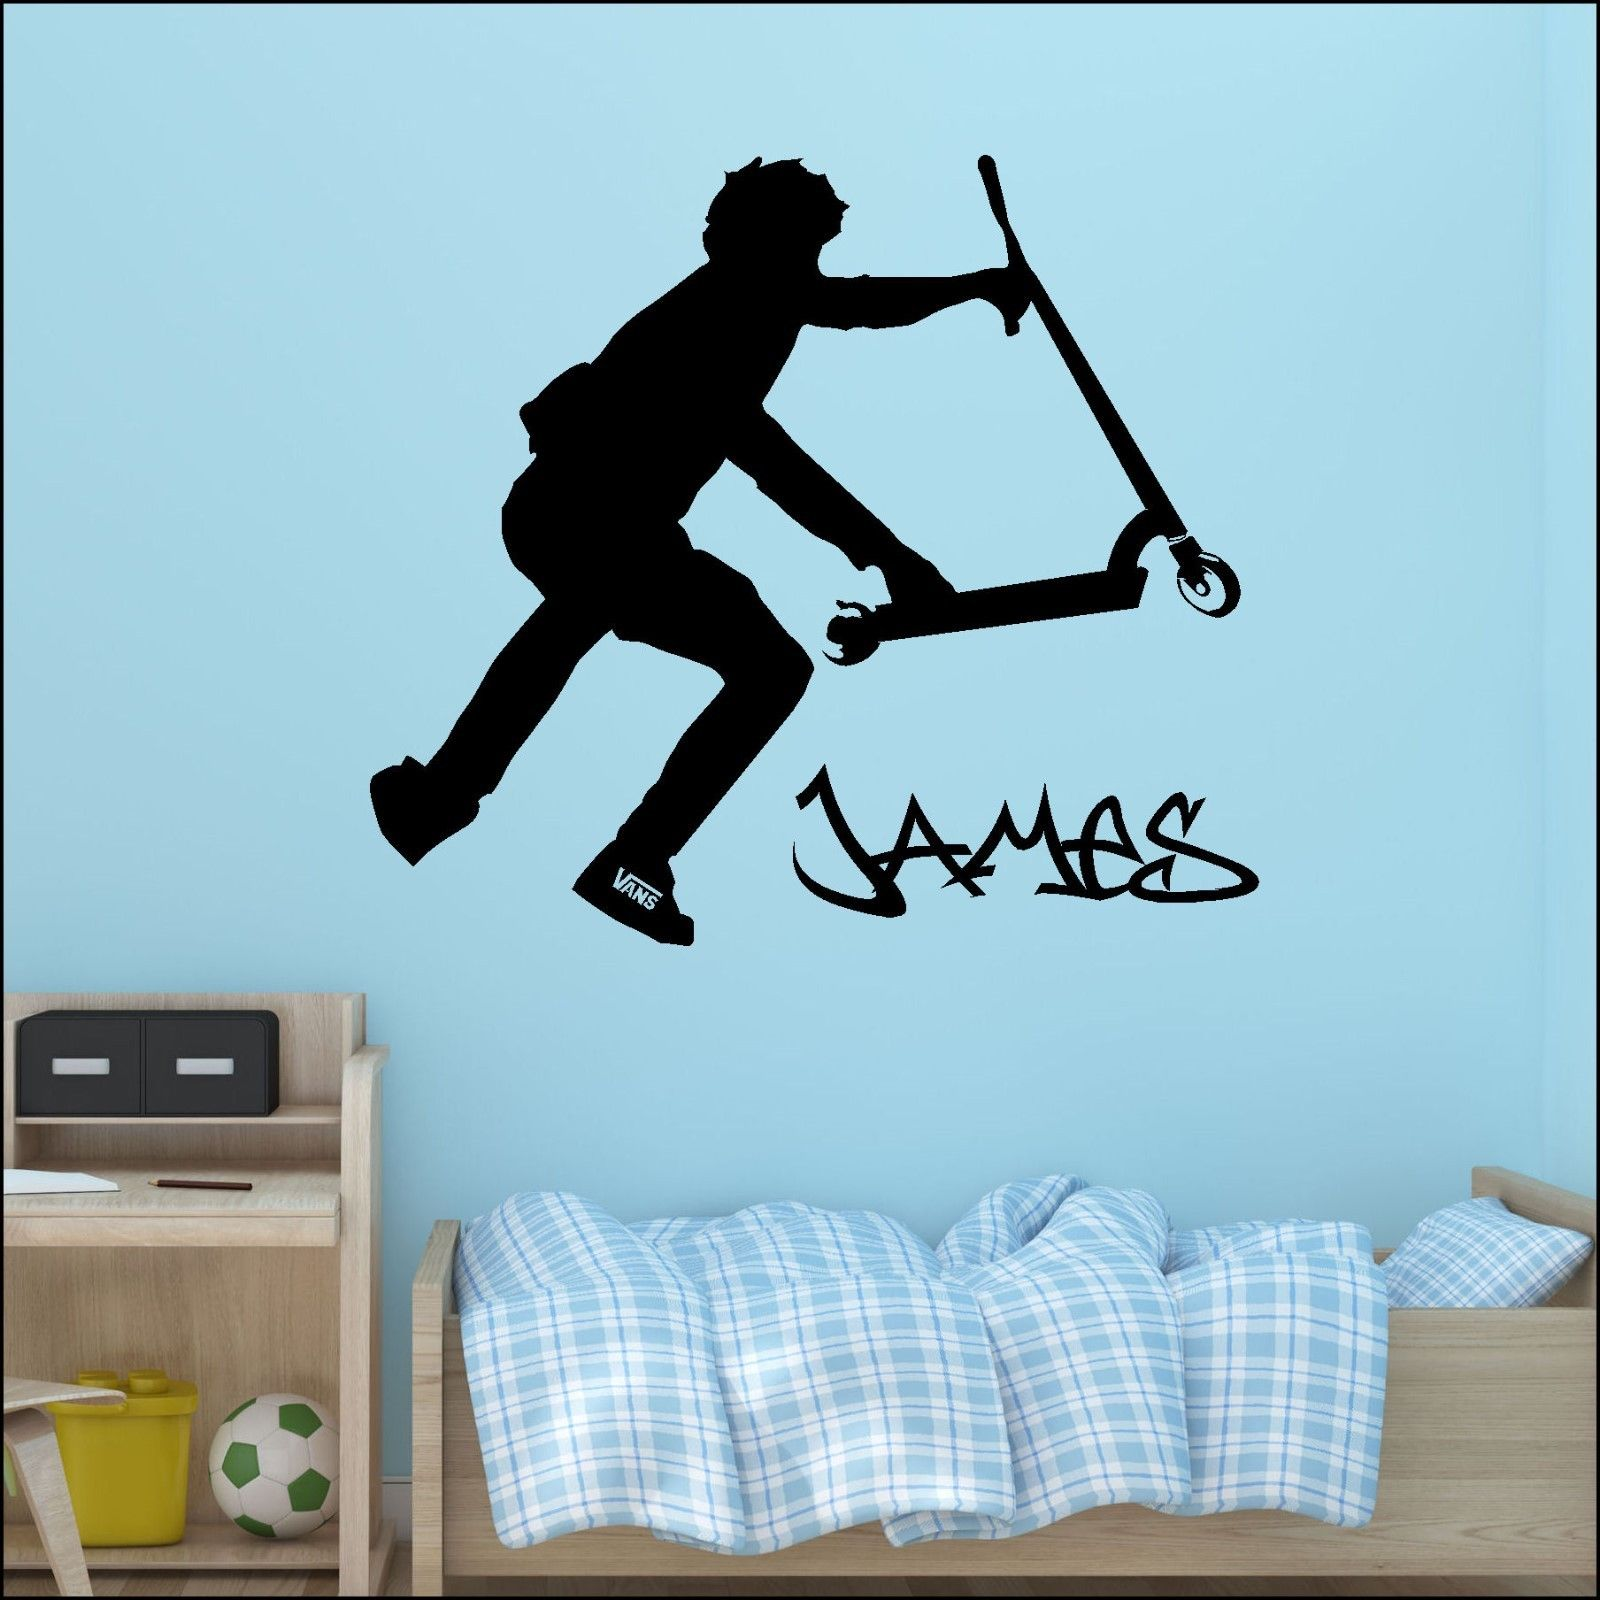 Stunt-scooter-wall-art-decal